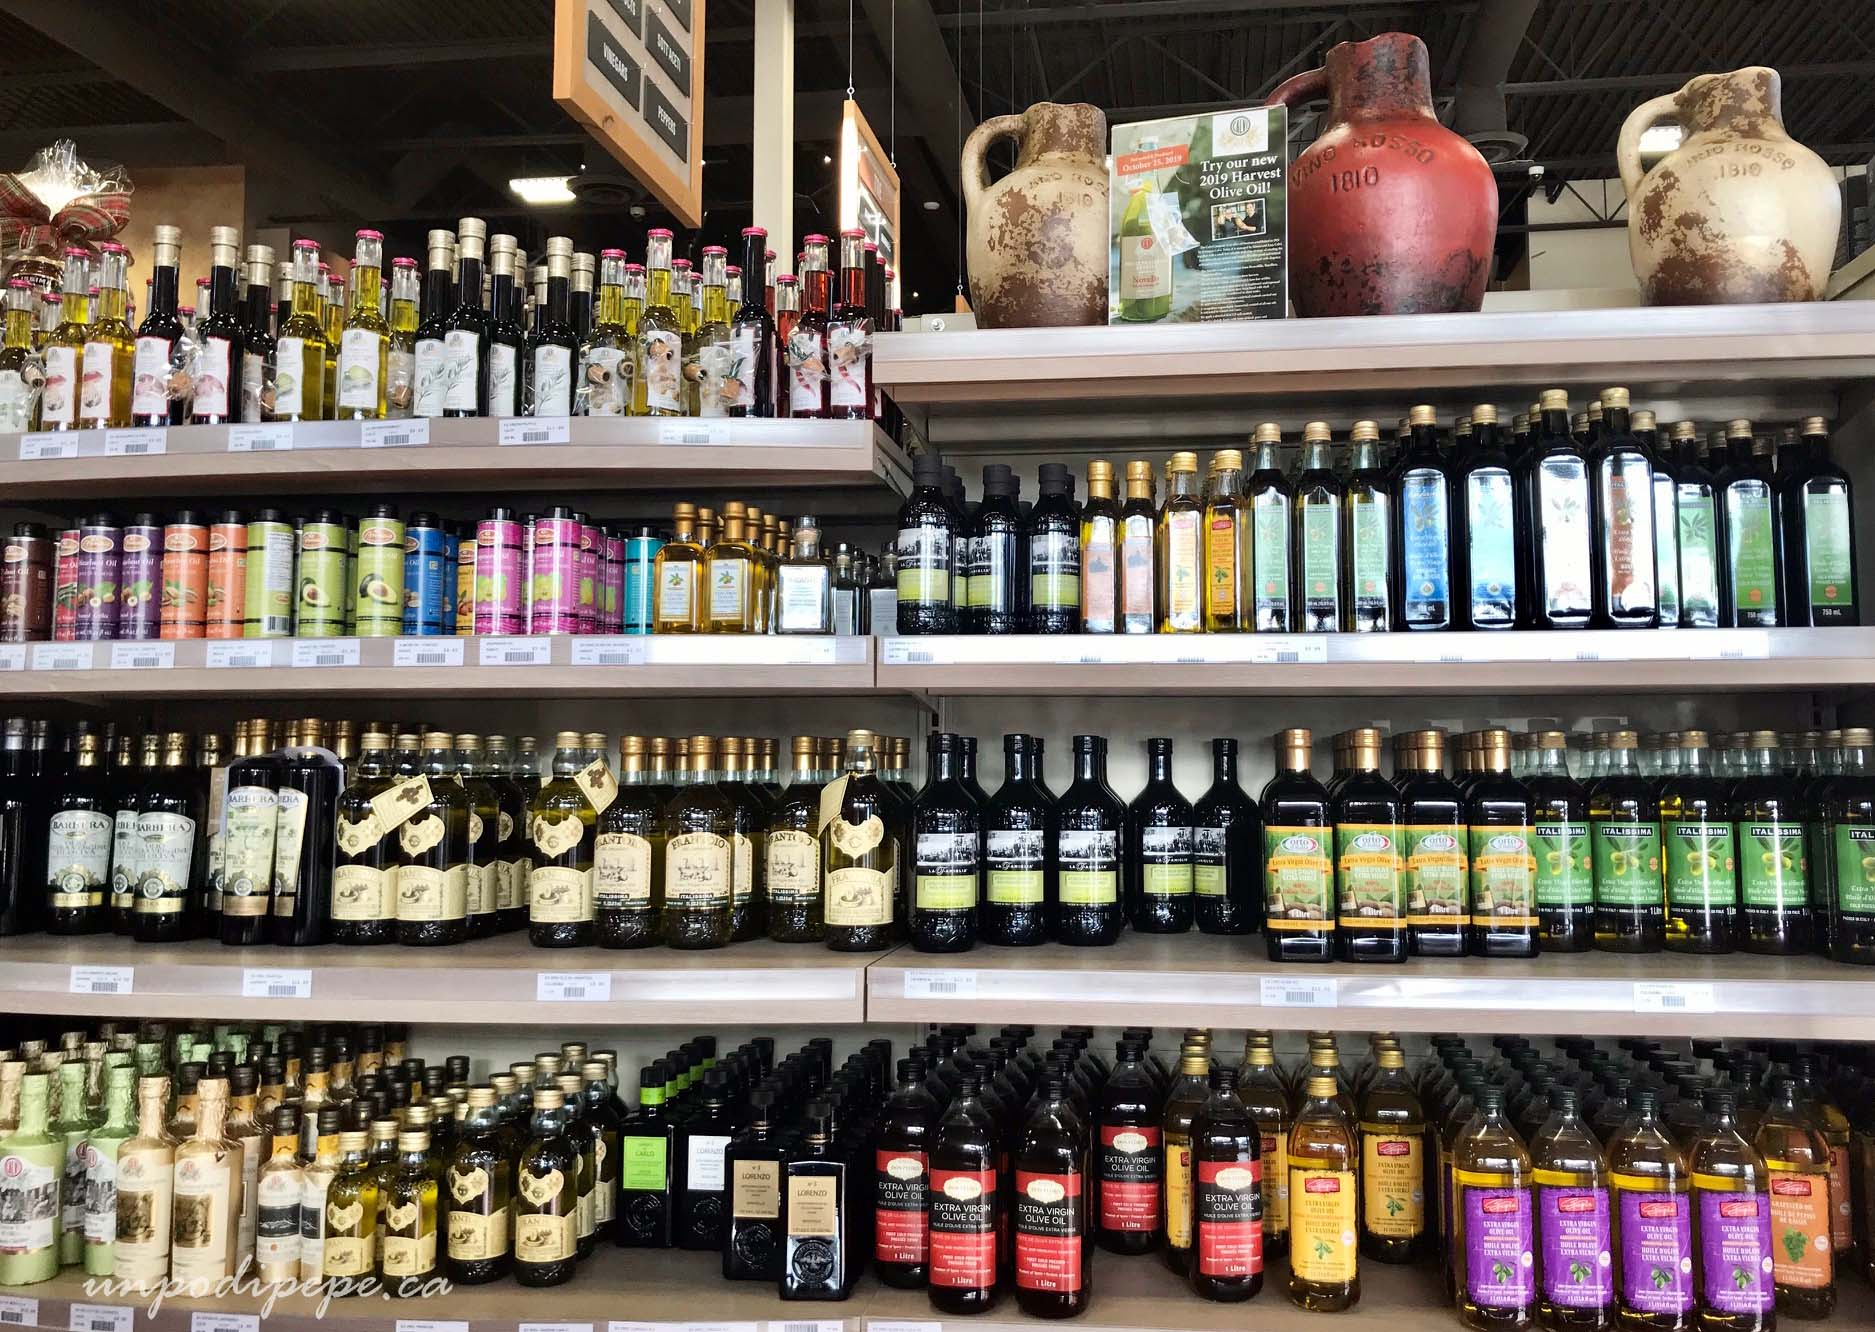 Olive oil section of supermercato